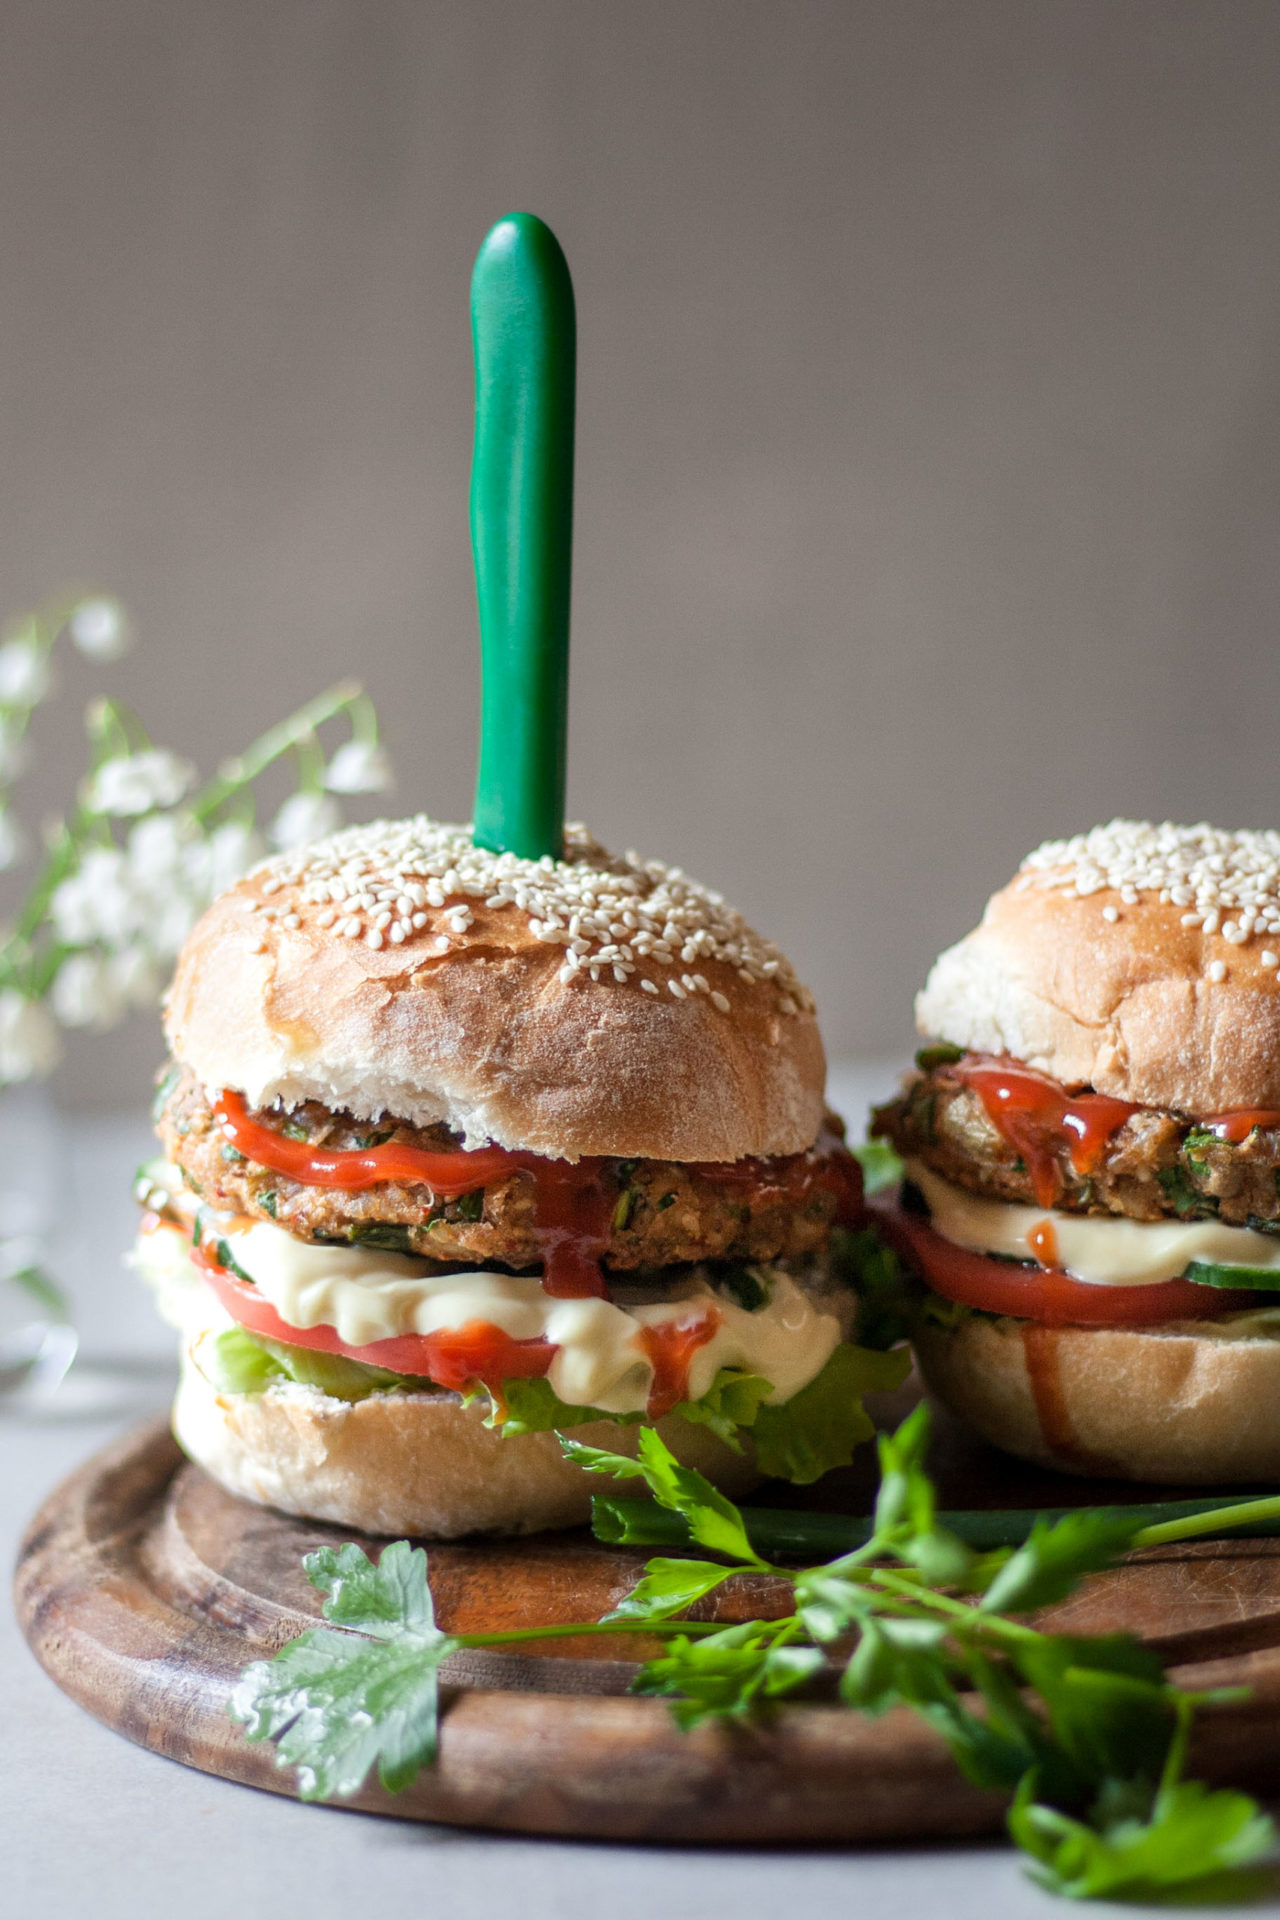 This low FODMAP veggie burger is simple to make, loaded with nutritious ingredients and easy to digest. Plus super flavorful with nice meaty texture and consistency